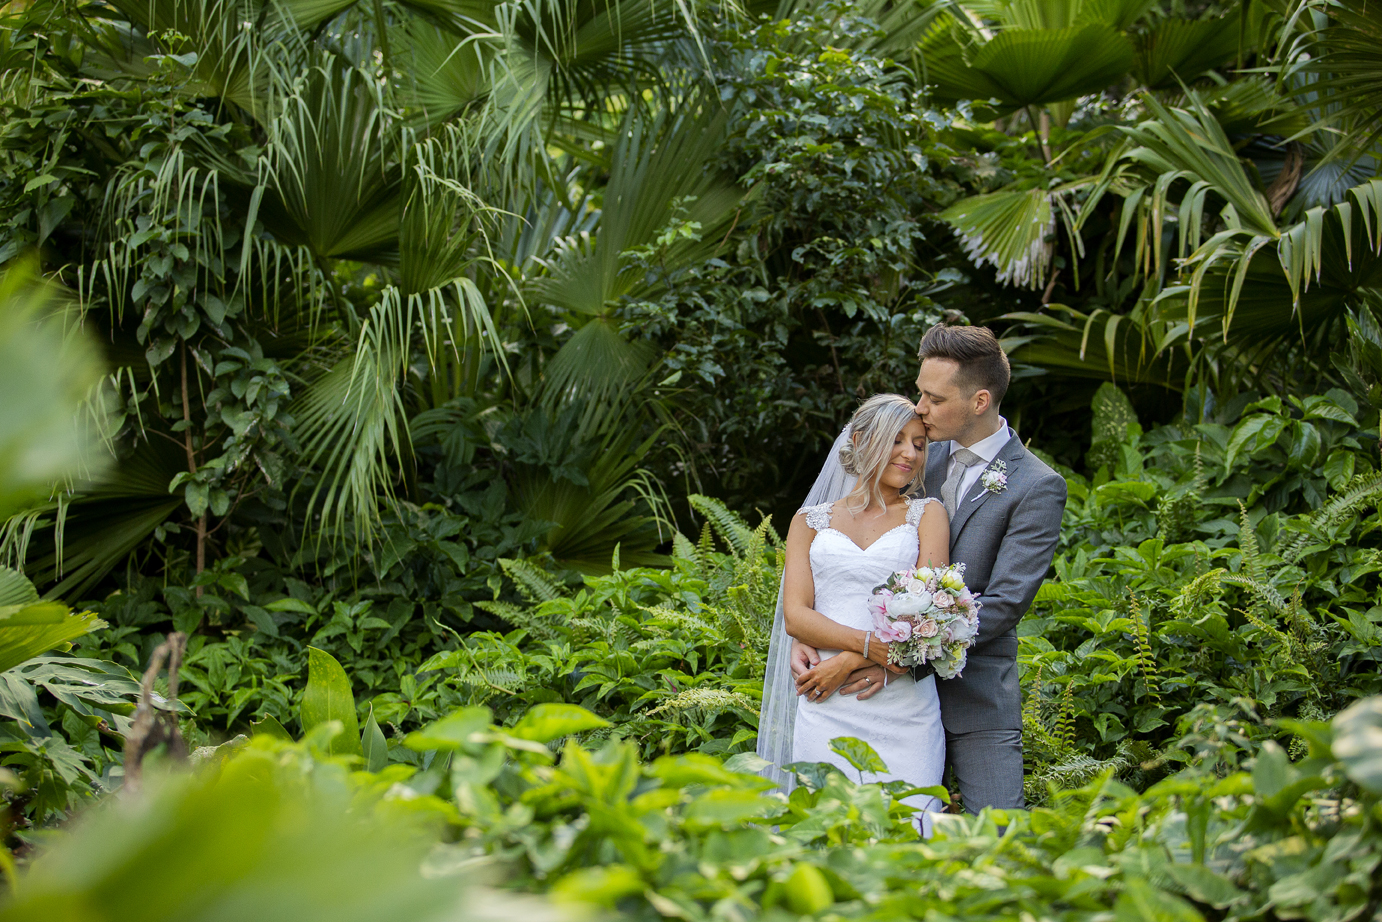 Villa Botanica Wedding photography in the Whitsundays by Brooke Miles